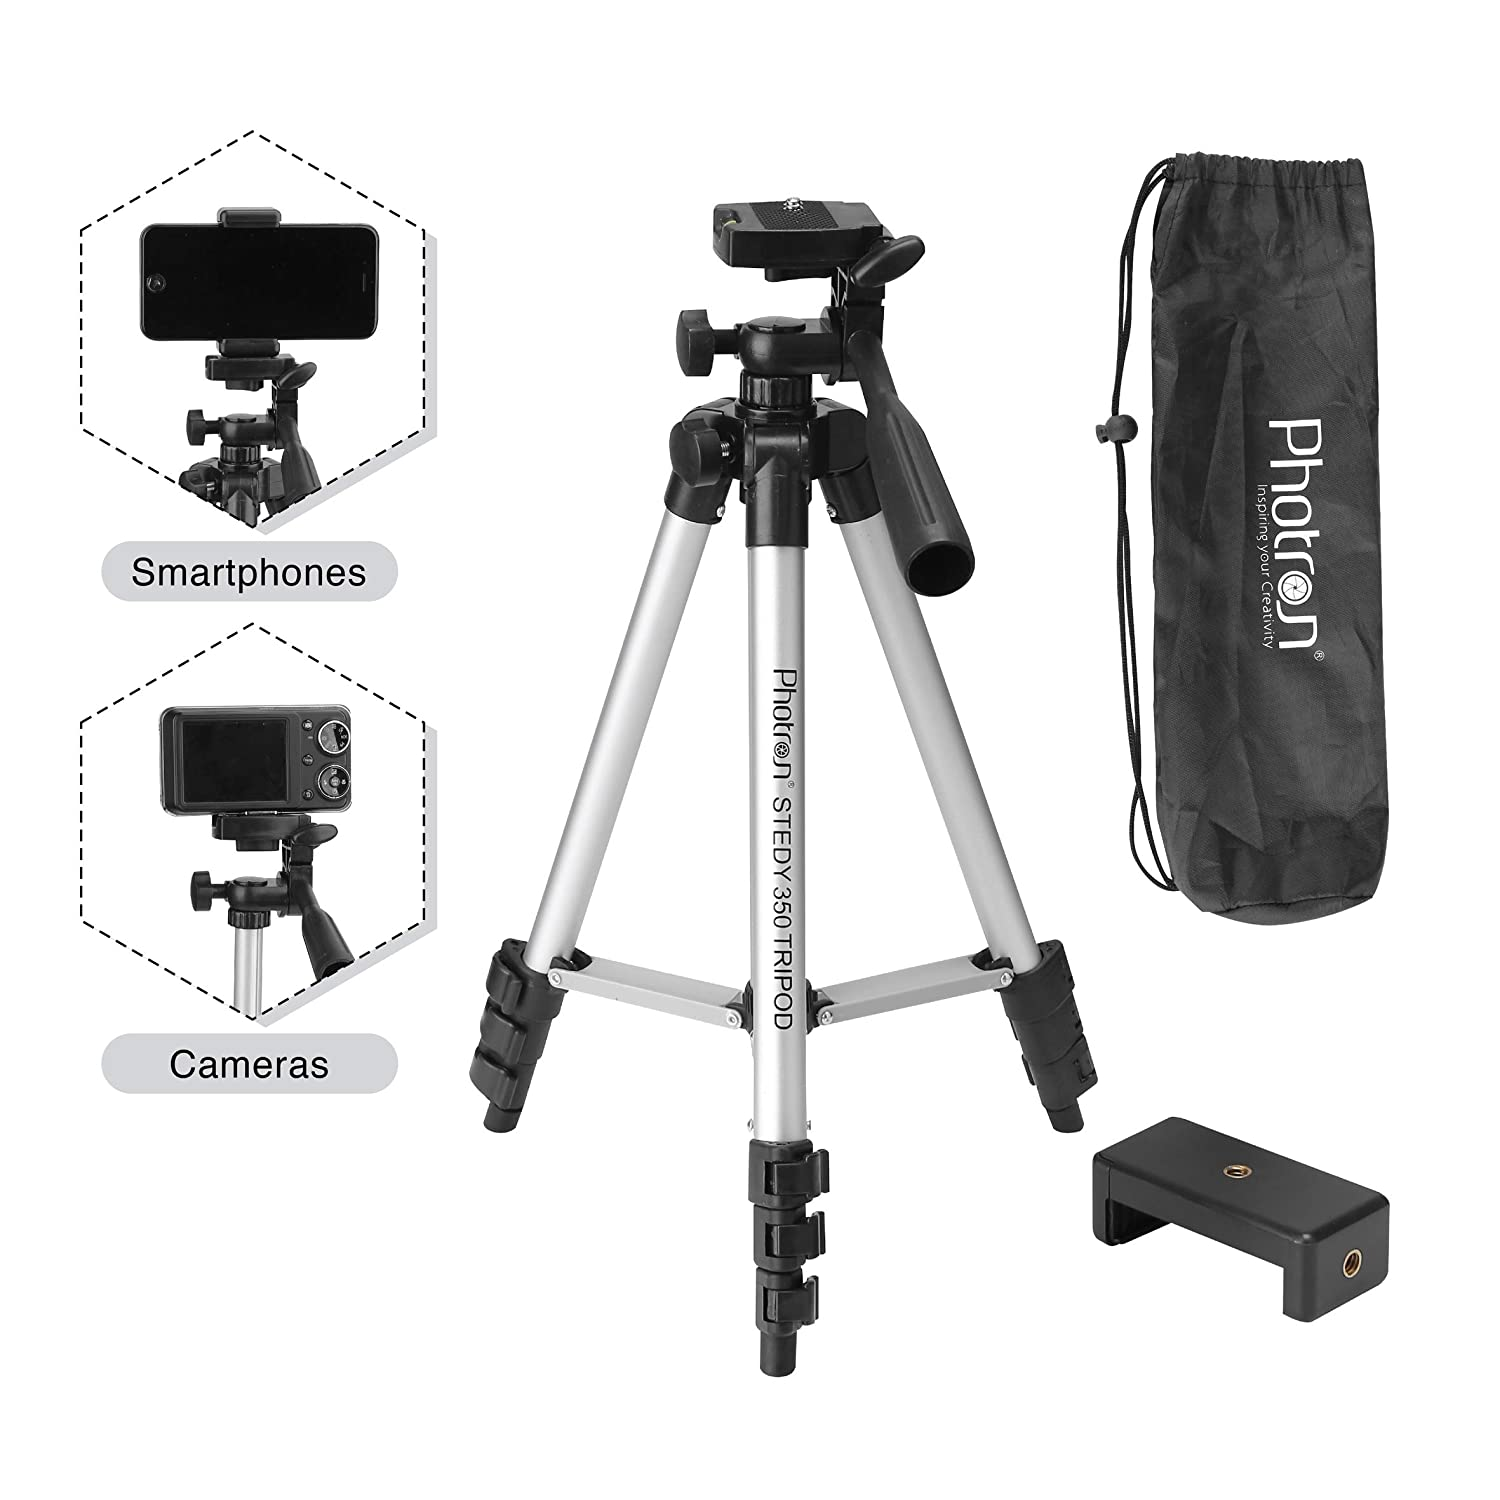 Amazon Specials - Camera accessories | Up to 80% OFF